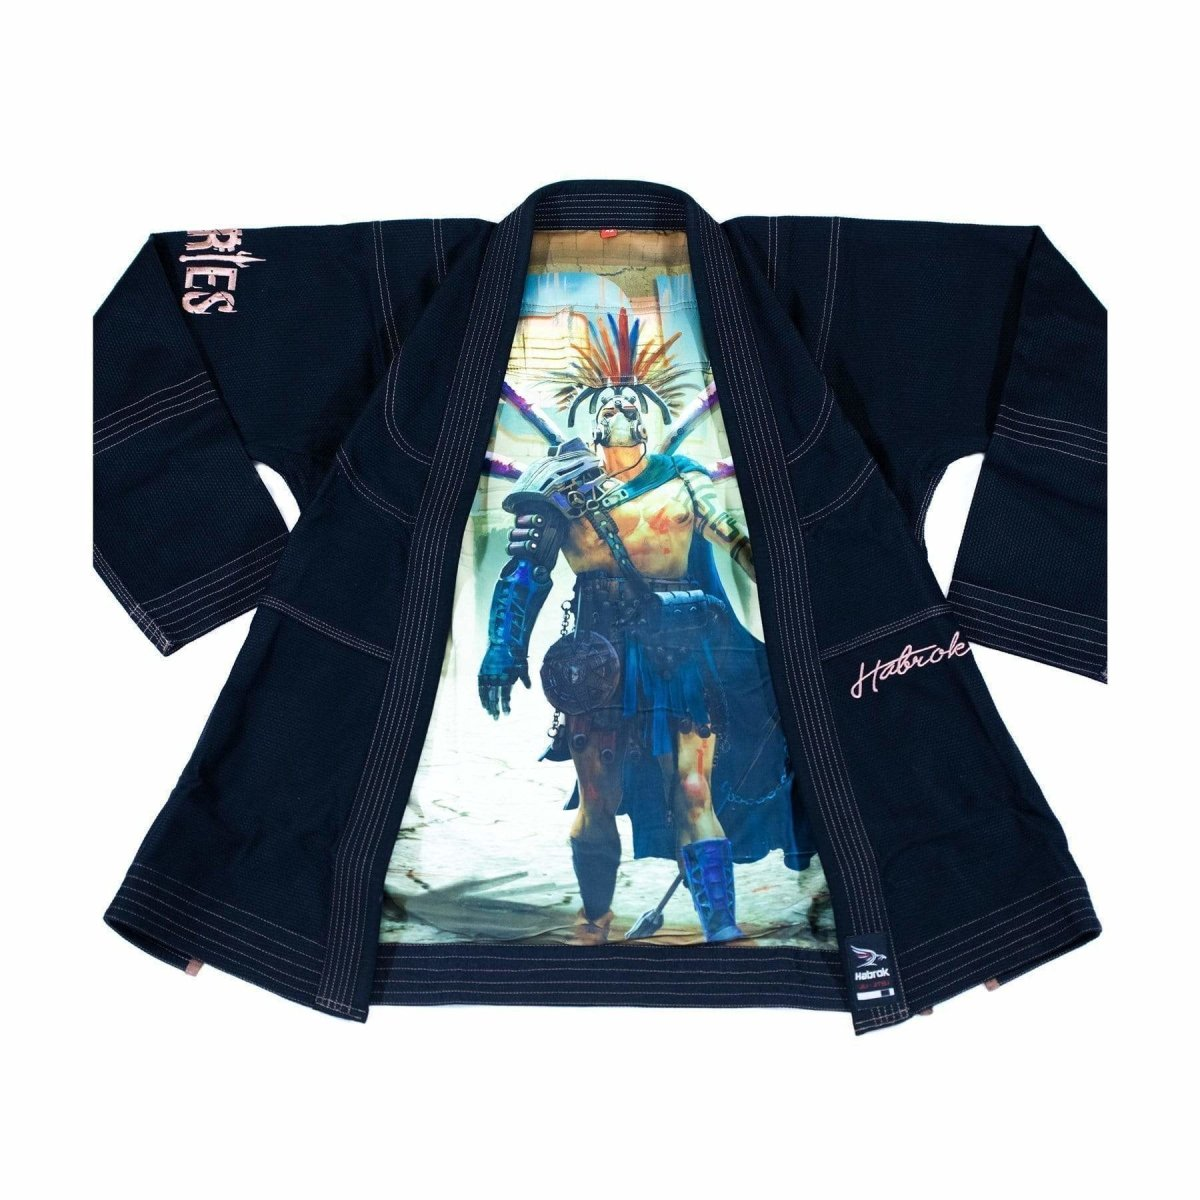 Habrok Jiu Jitsu Gi K00 / BLACK Ares | The Apocalypse Gladiator | BJJ GI | Youth | Black